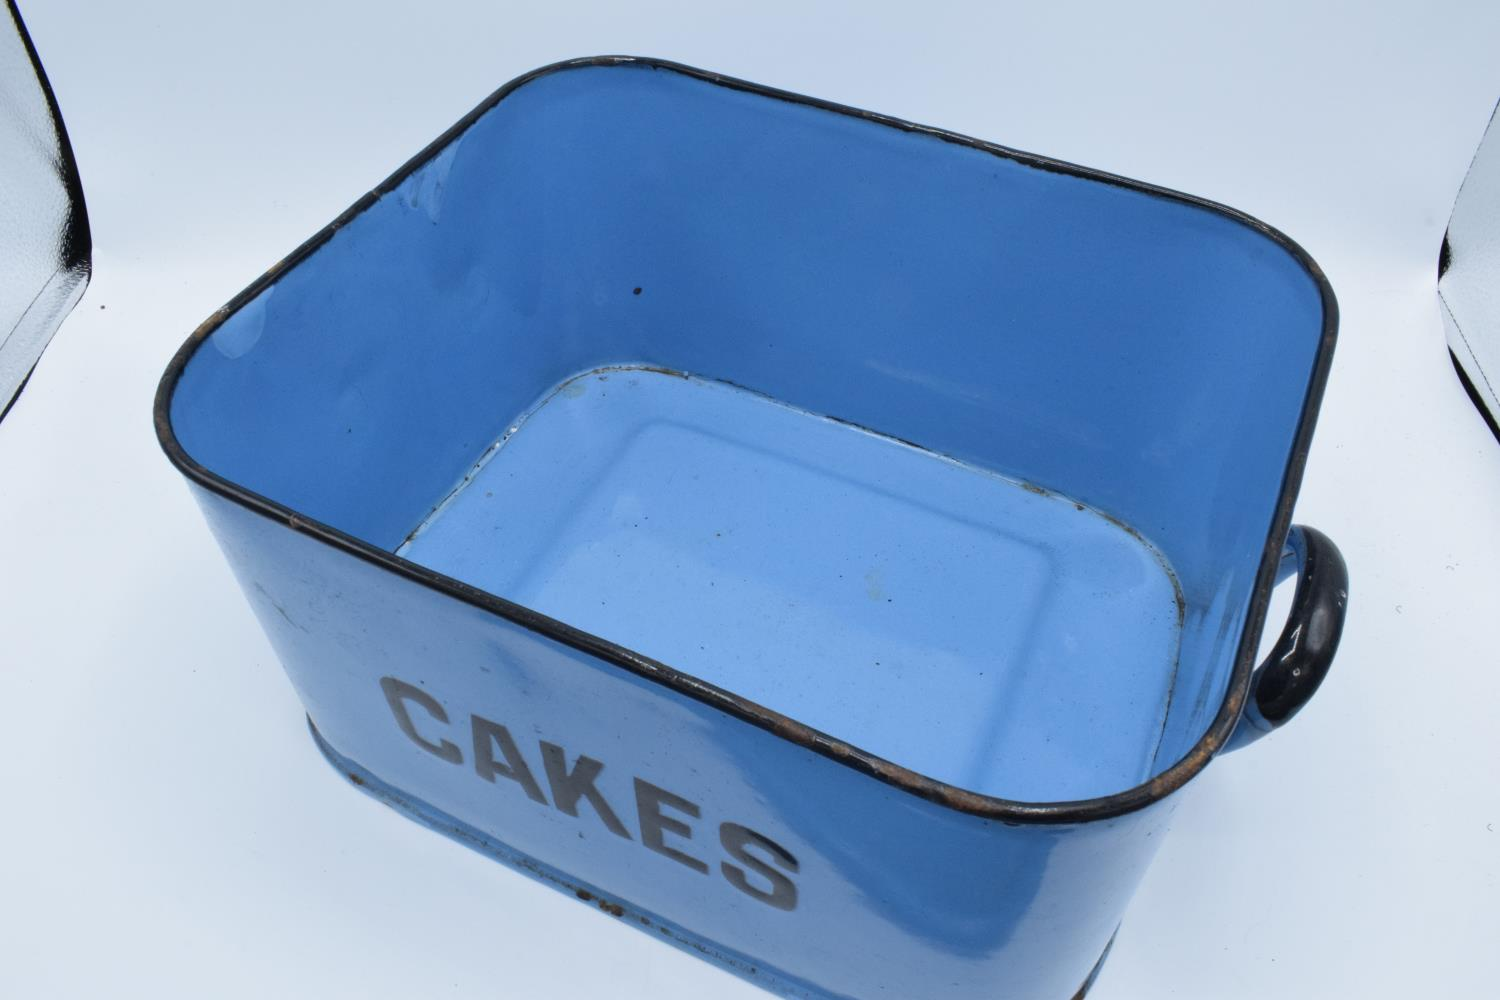 Original 1960s blue enamel cake tin (untouched condition) Loss of enamel in some places, slightly - Image 3 of 3